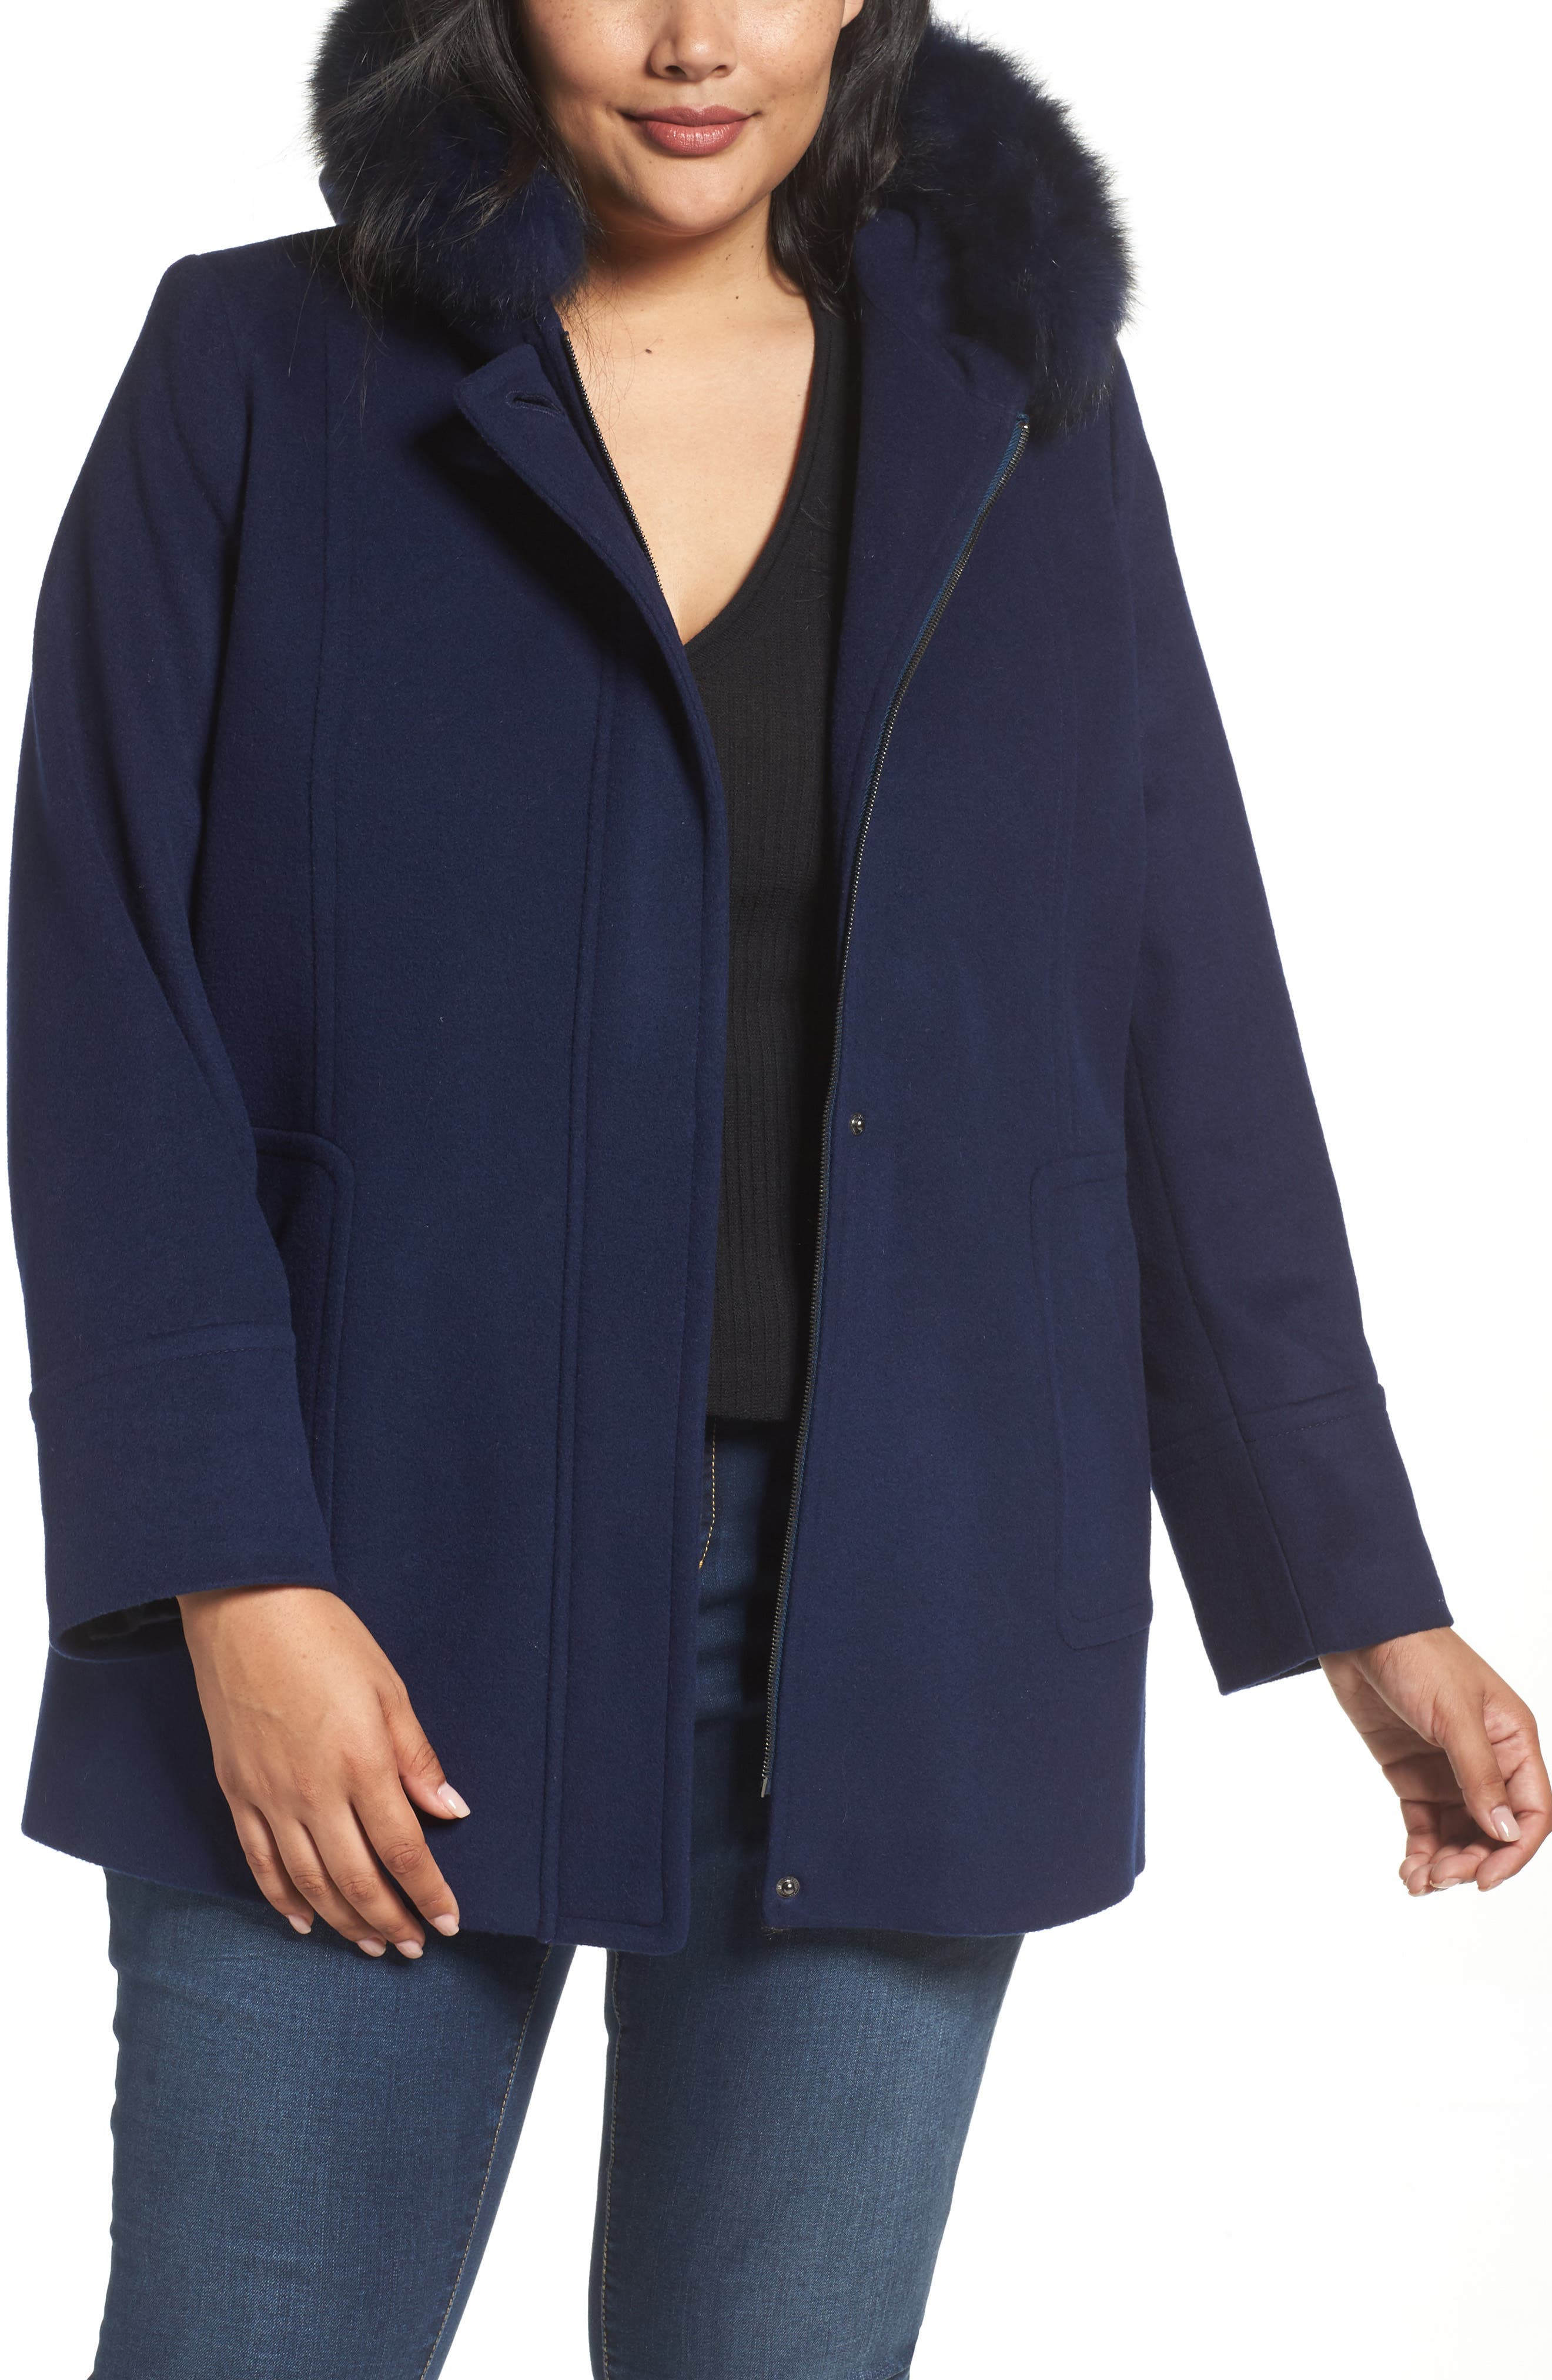 Alternate Image 1 Selected - Sachi Hooded Wool Blend Coat with Genuine Fox Fur Trim (Plus Size)